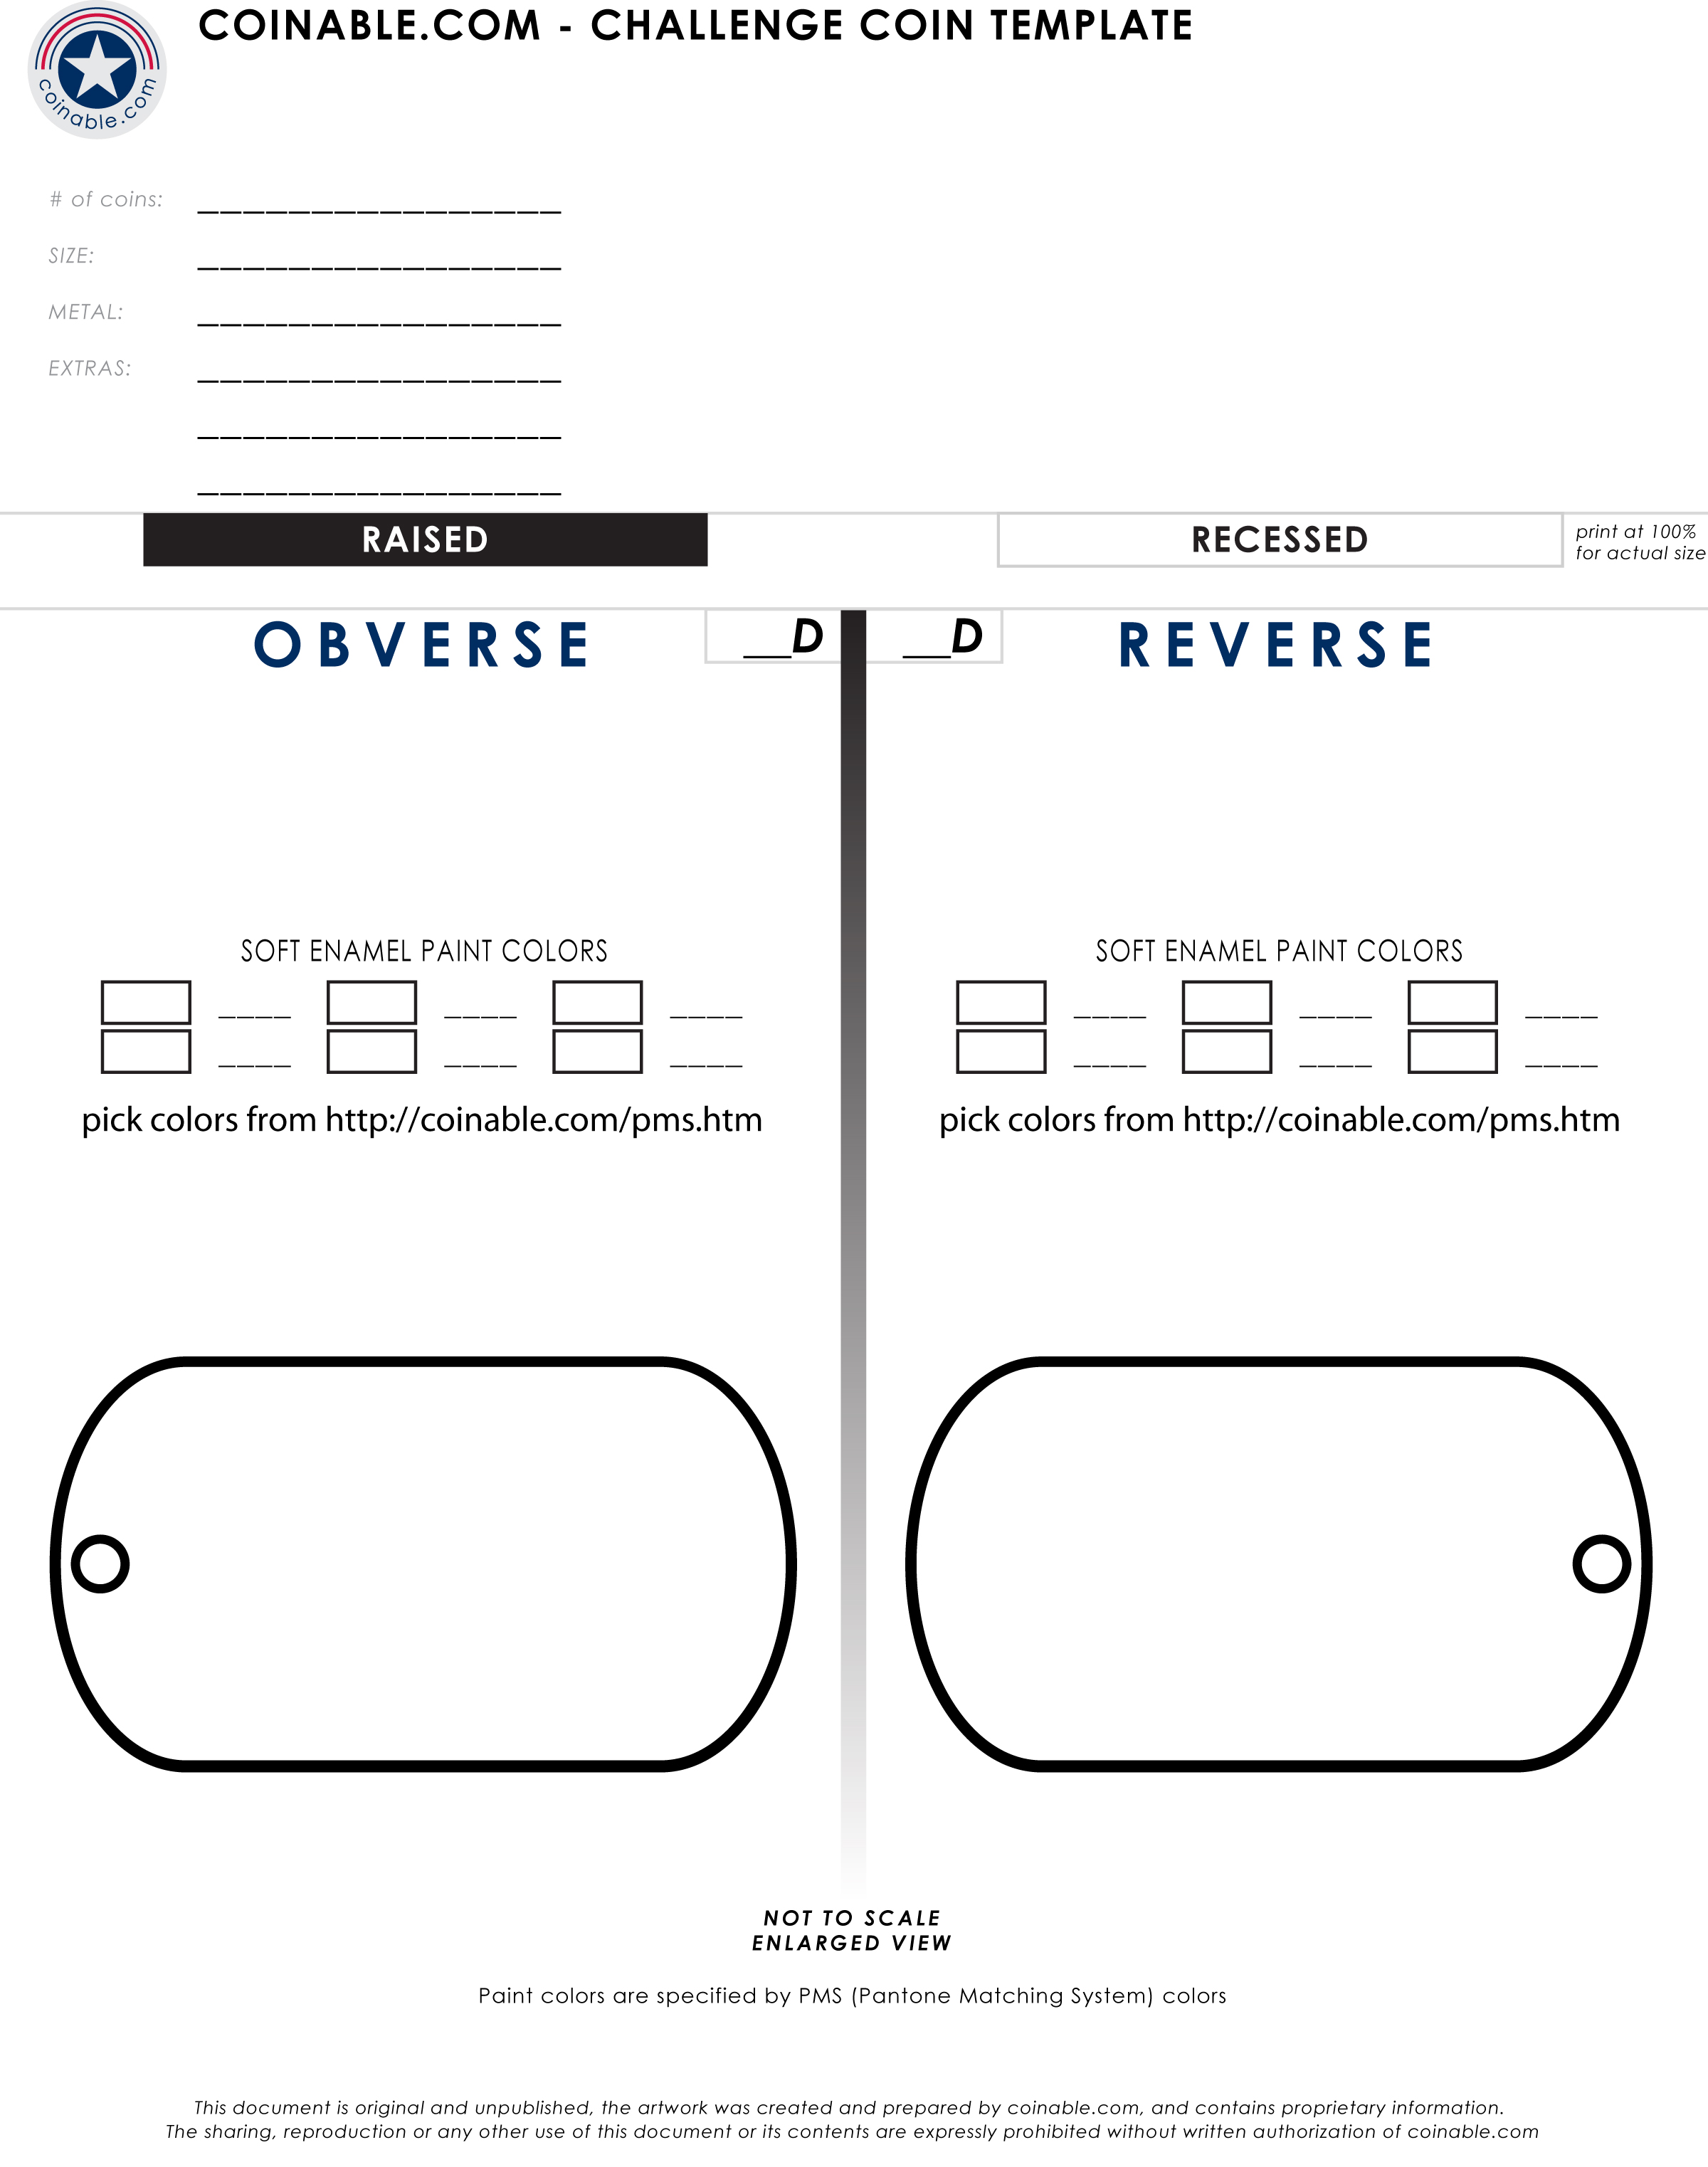 Dog Tag Challenge Coin Template